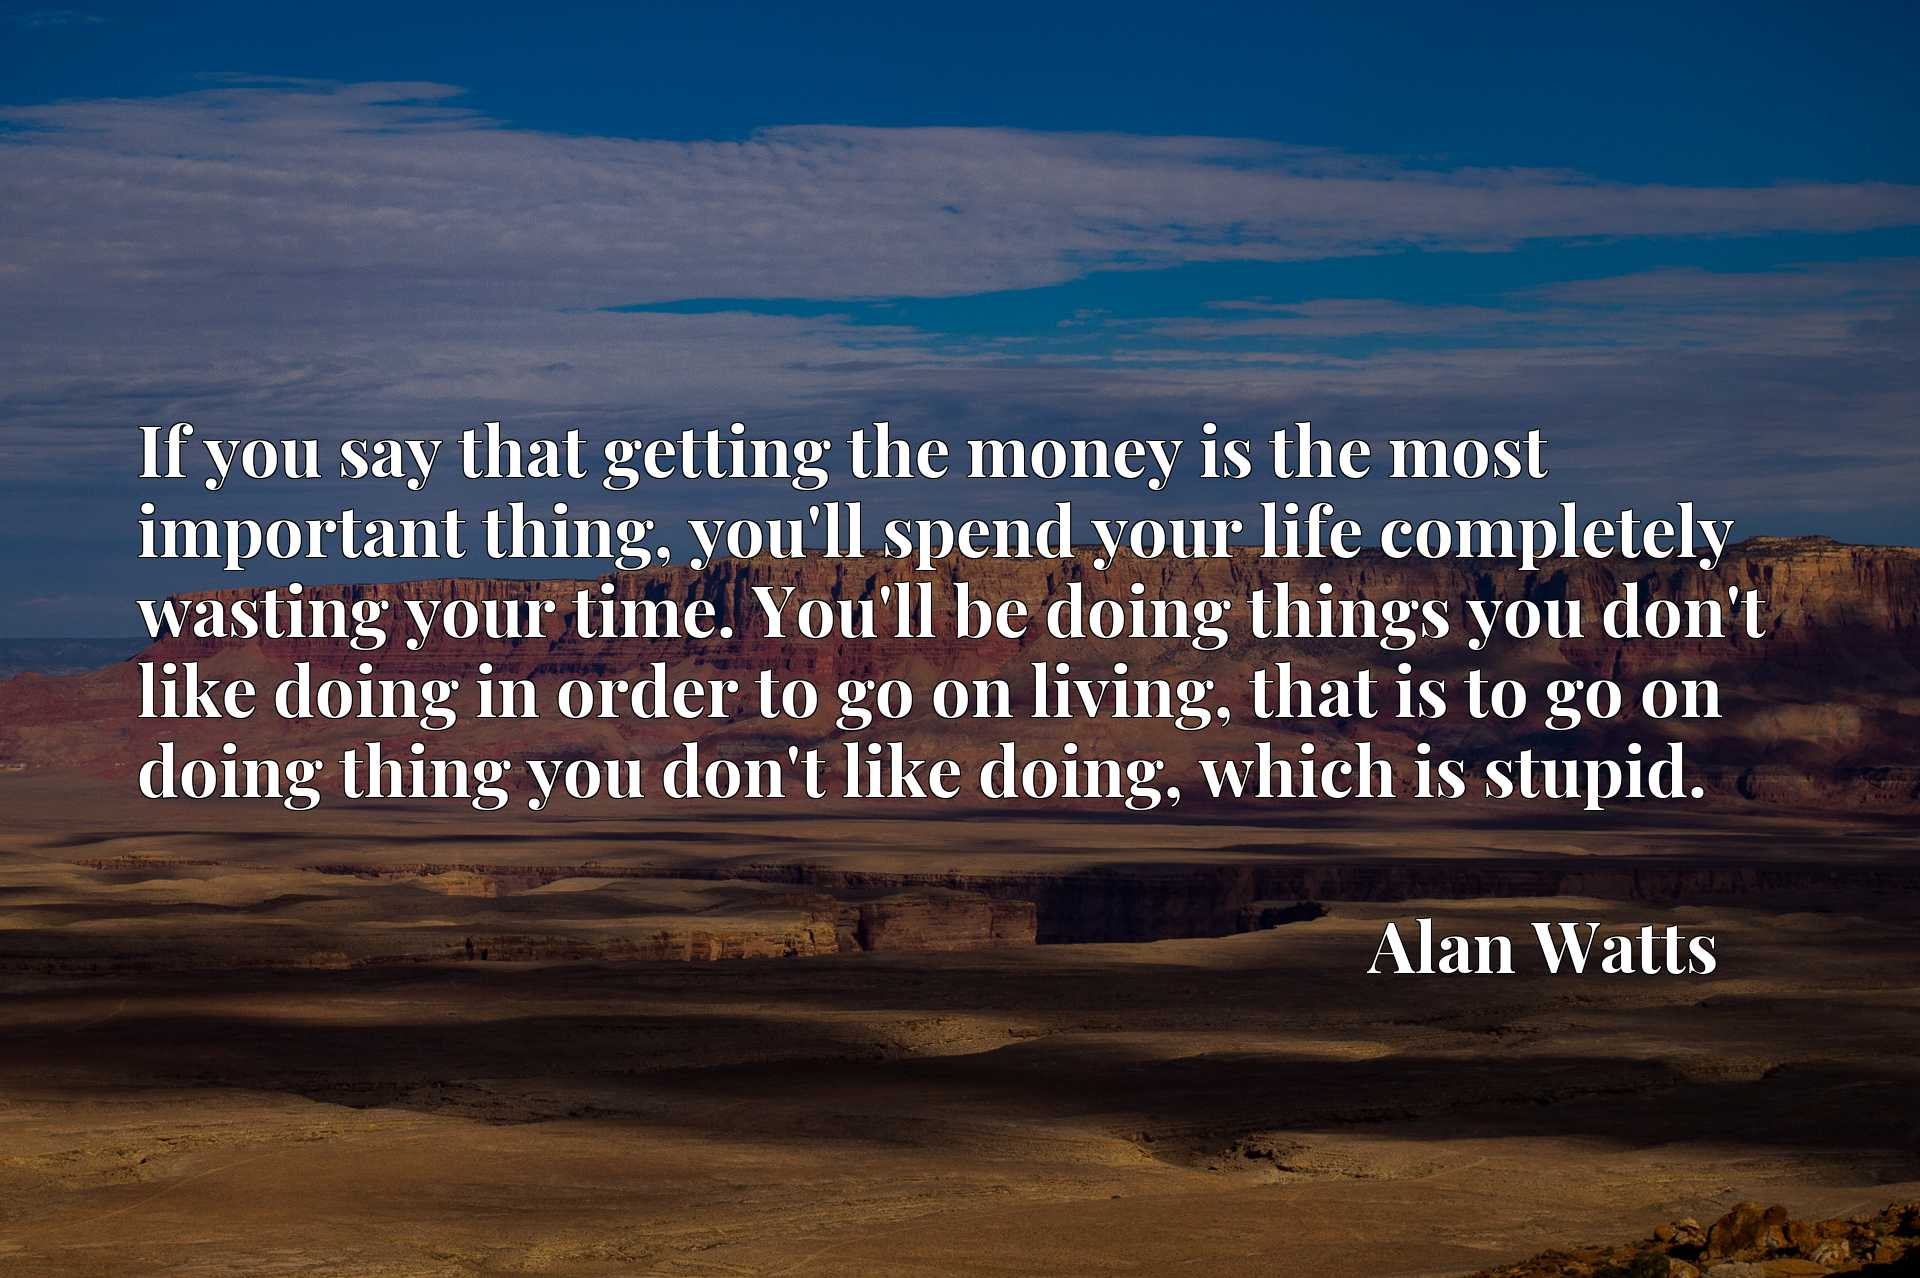 If you say that getting the money is the most important thing, you'll spend your life completely wasting your time. You'll be doing things you don't like doing in order to go on living, that is to go on doing thing you don't like doing, which is stupid.